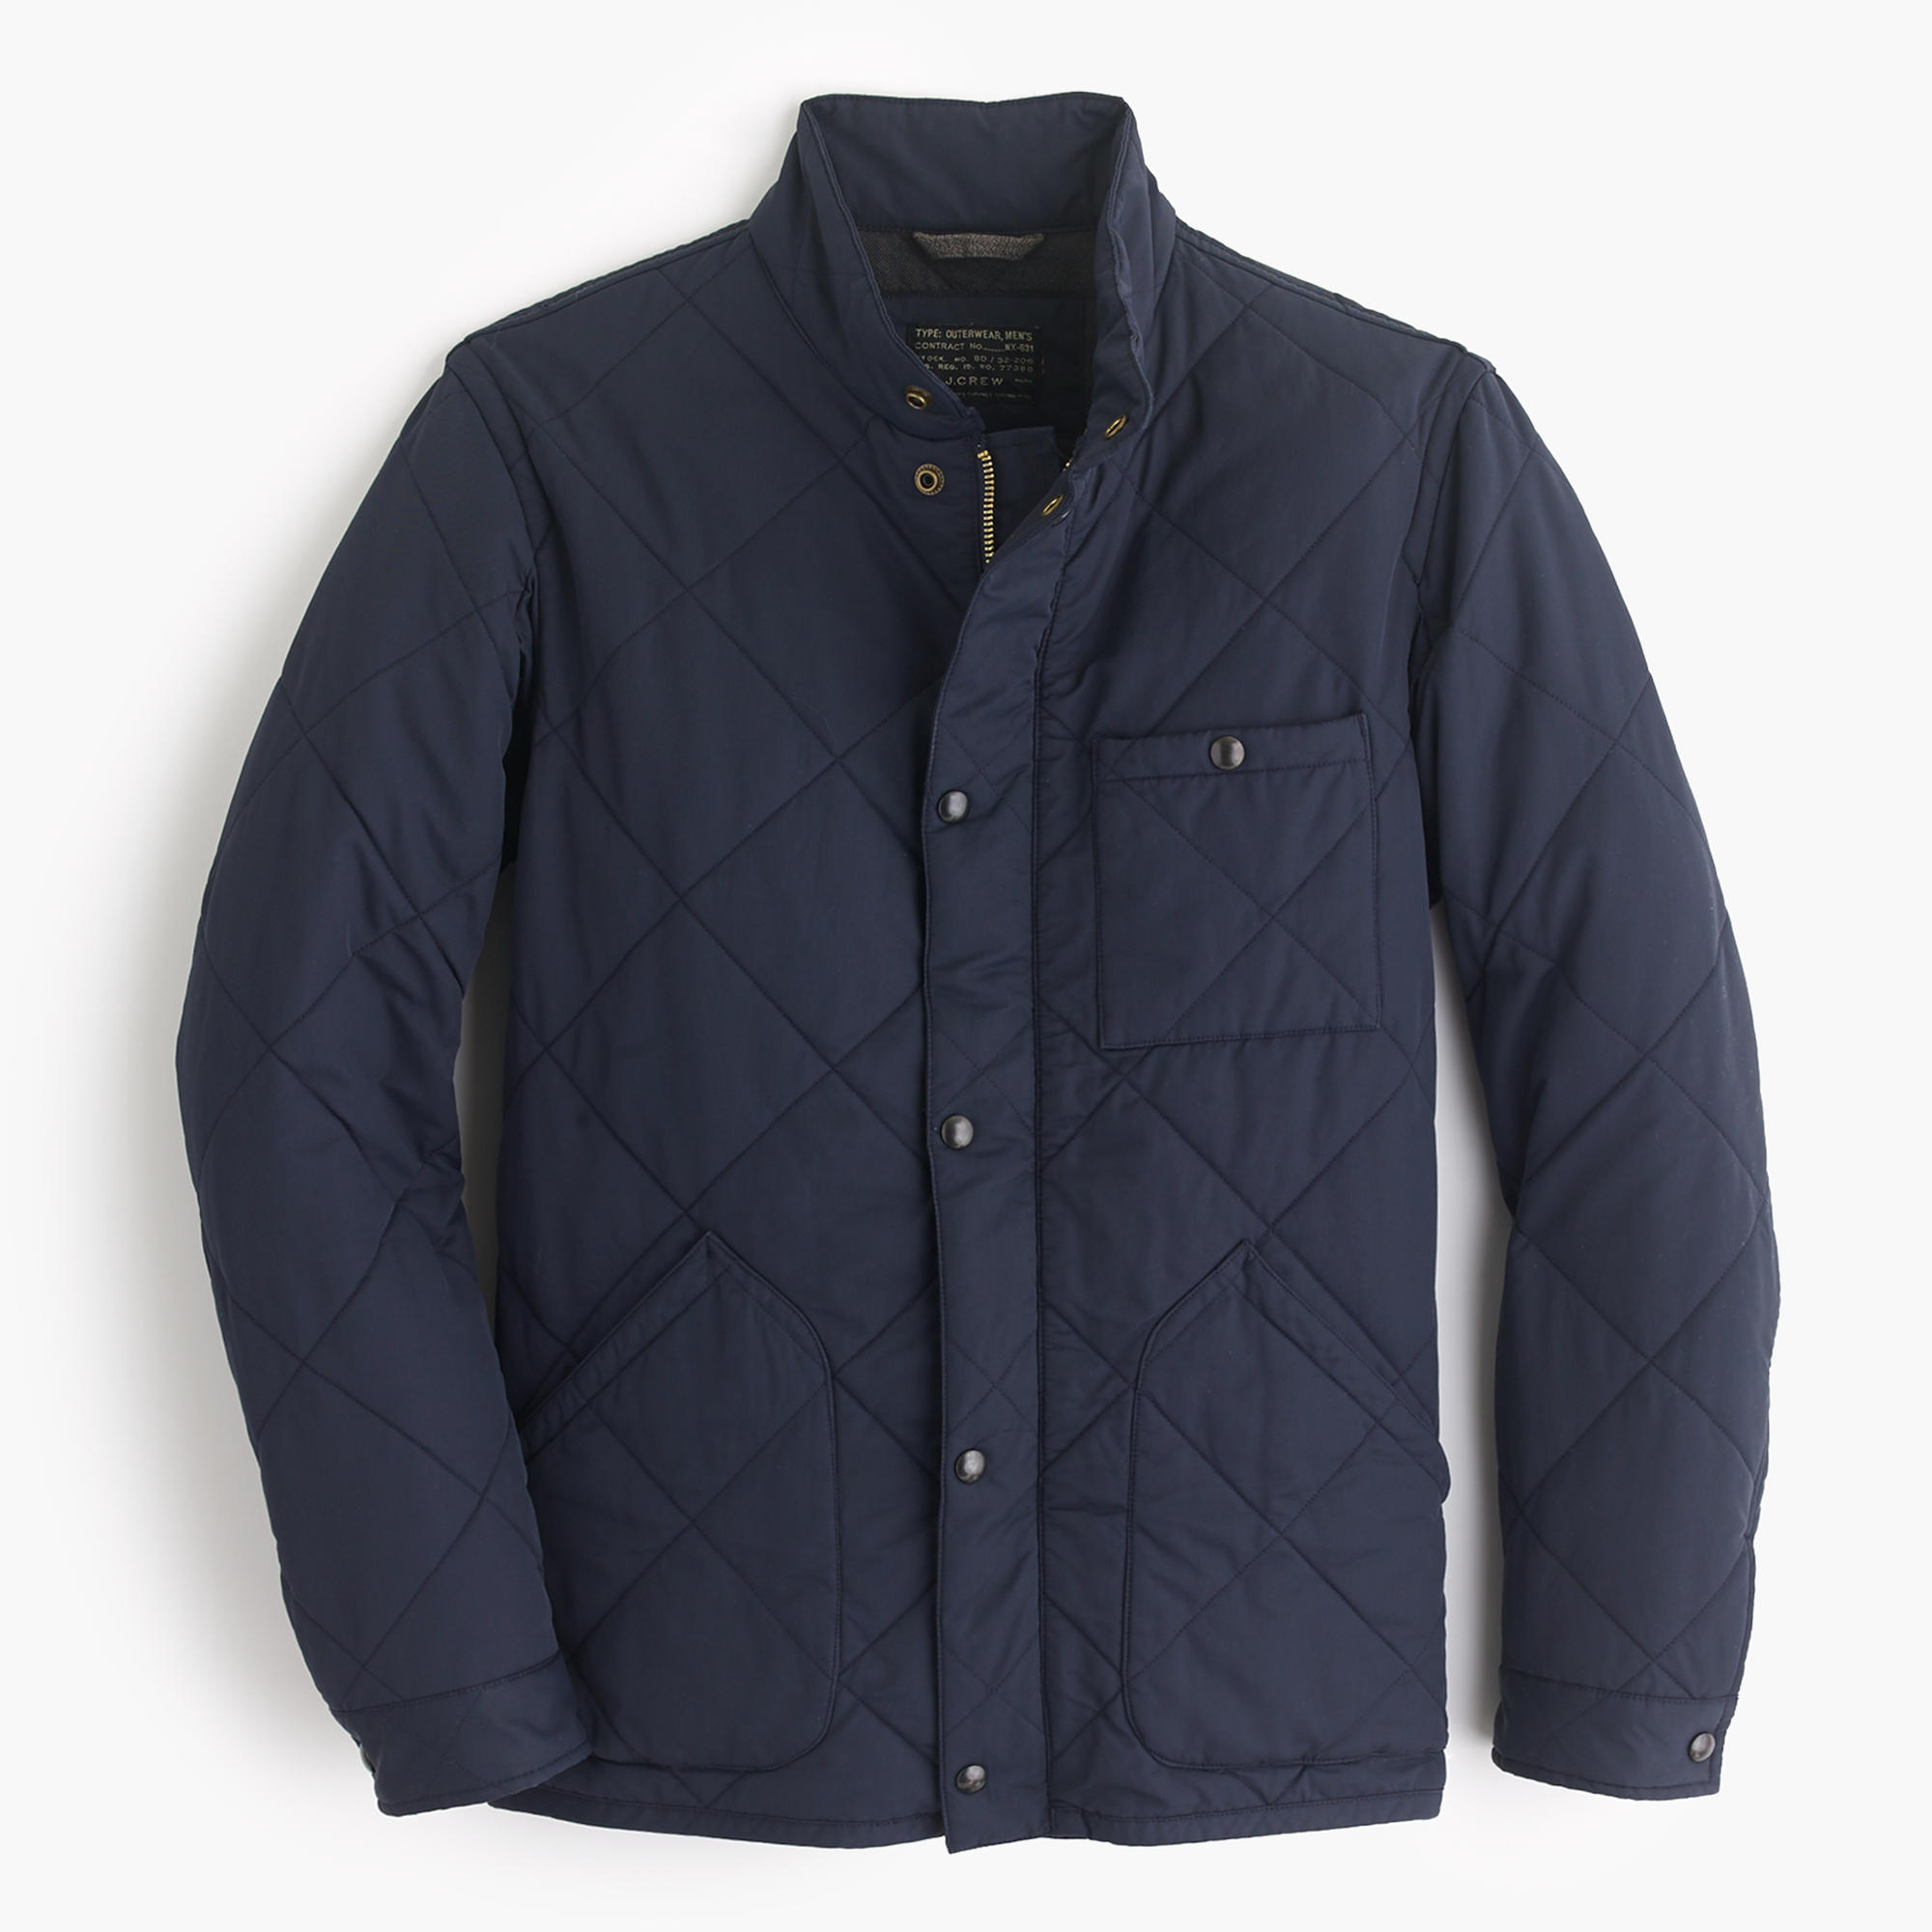 Sussex Quilted Jacket : Men's Coats & Jackets.